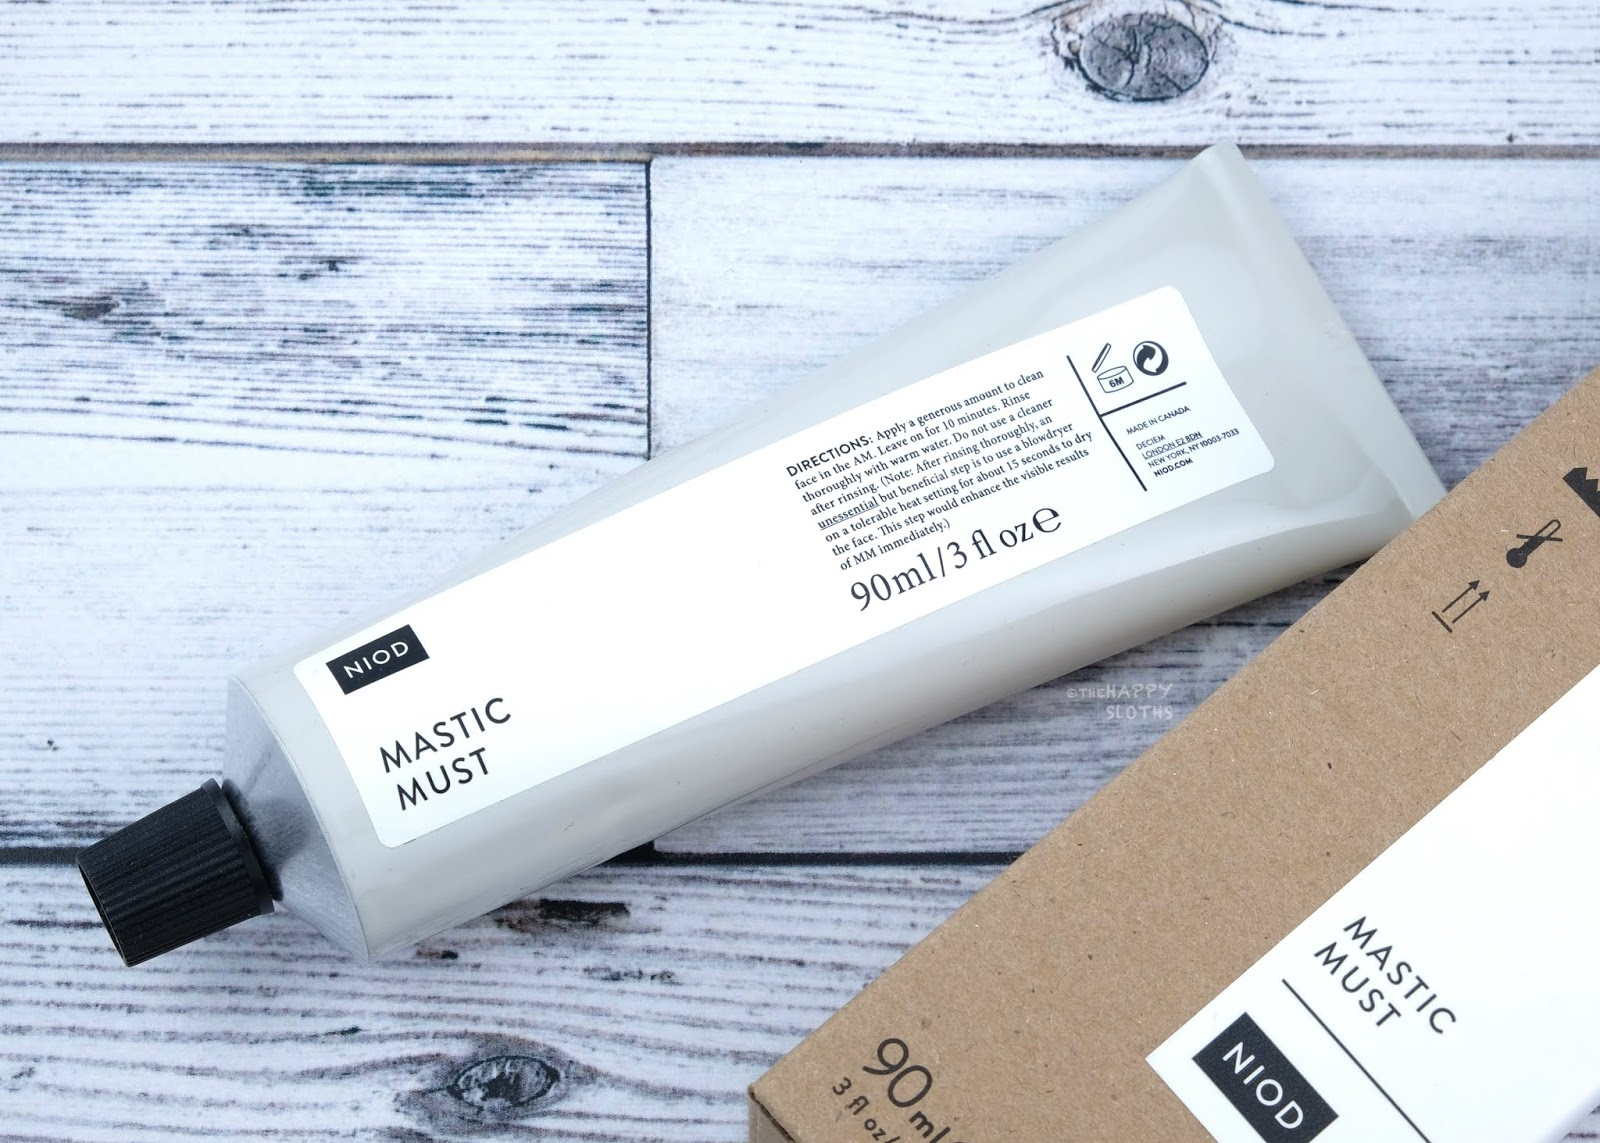 DECIEM | NIOD Mastic Must: Review